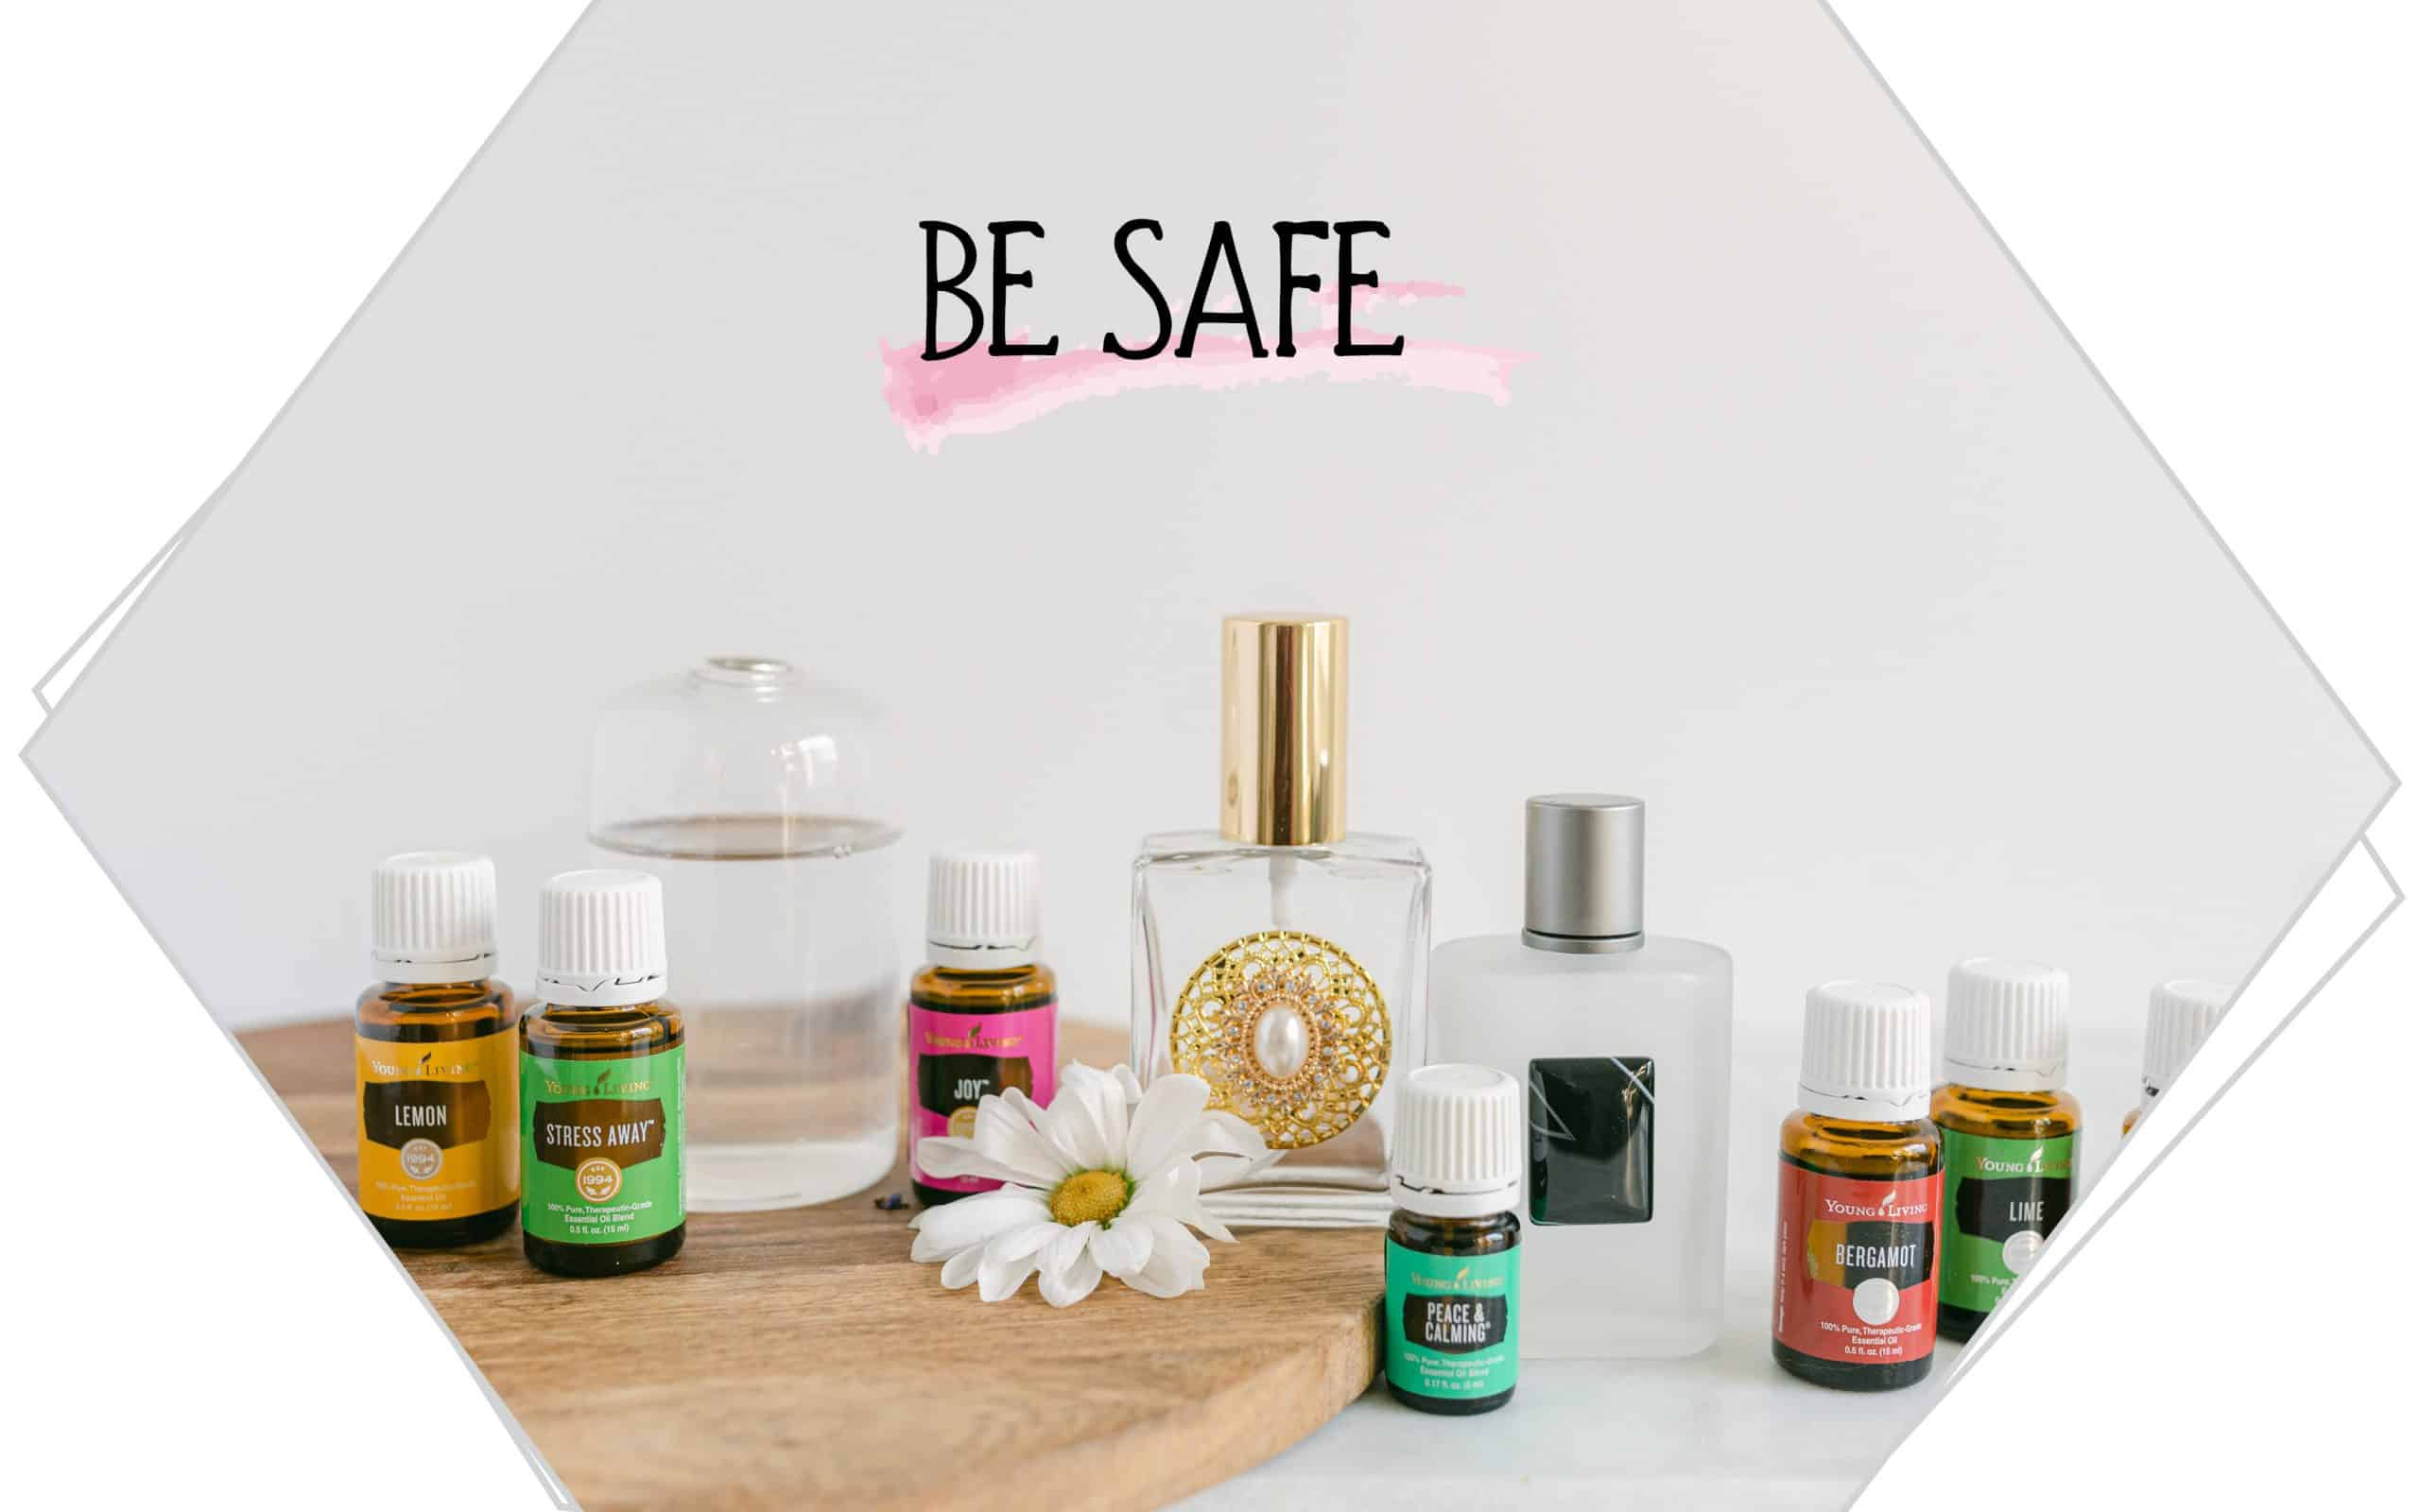 Essential oils and perfume bottles wiht the words Be Safe written on the background